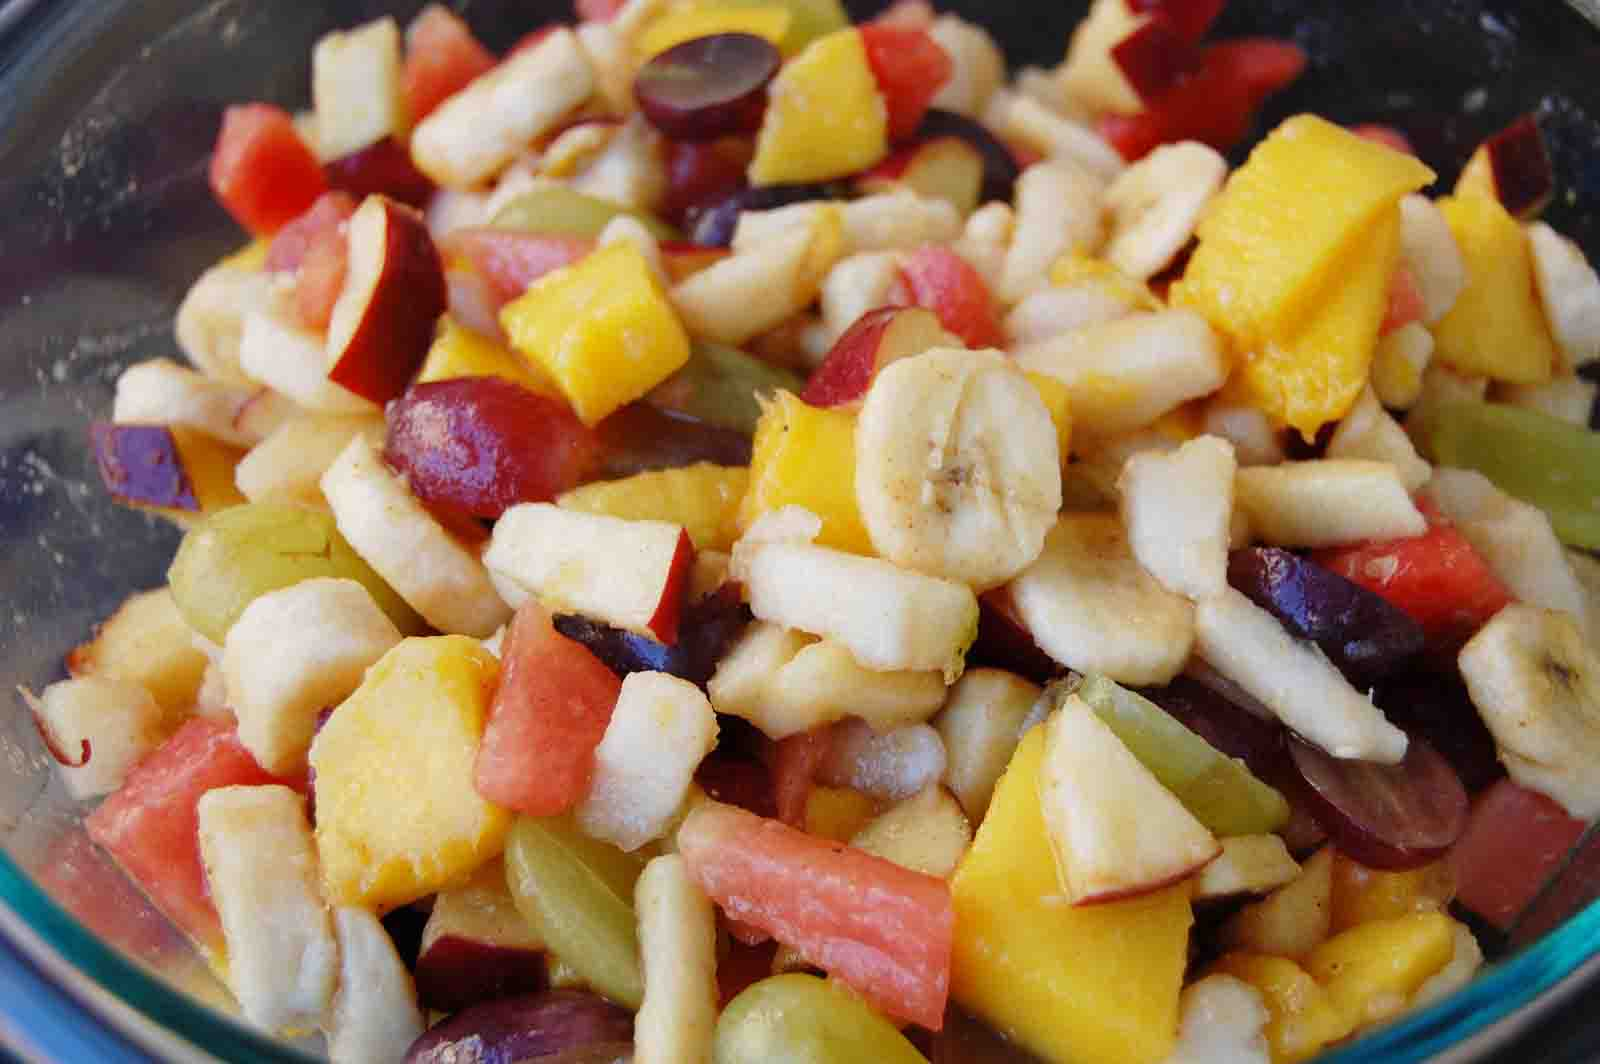 Ramadan Food Diaries #12 Quick Fruit Chaat